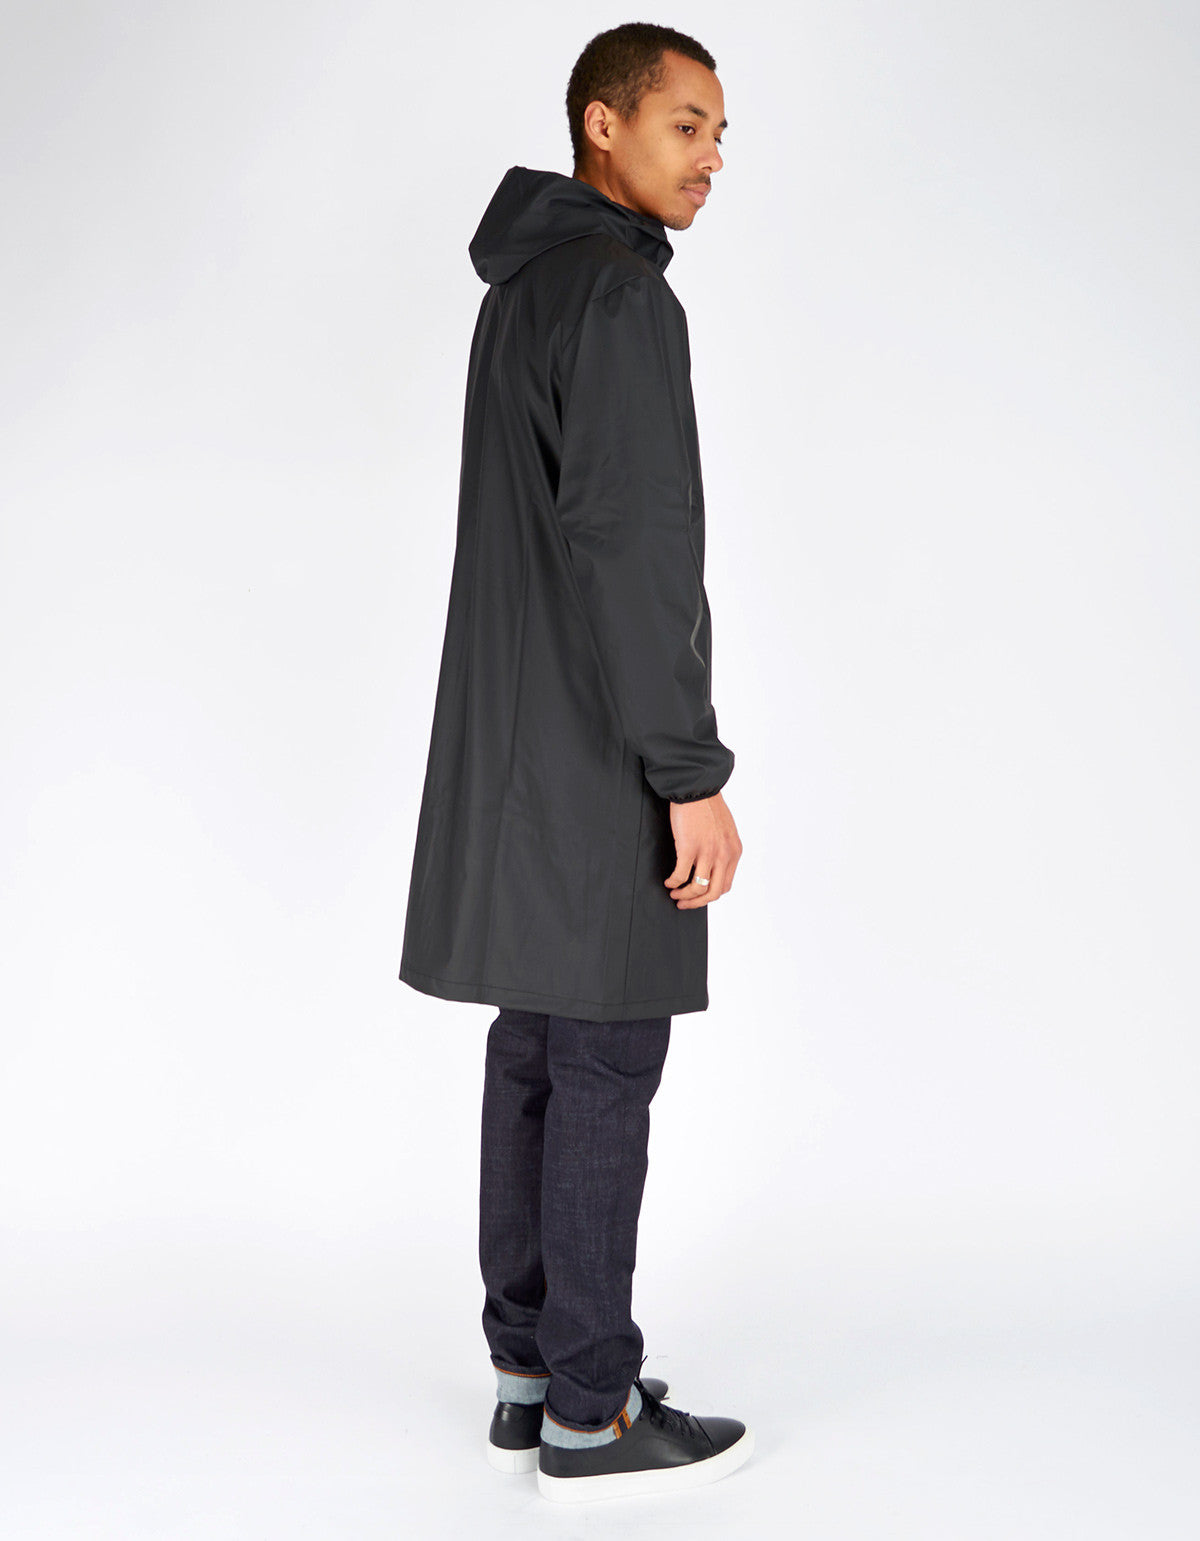 Rains Men's Base Jacket Long Black - Still Life - 4